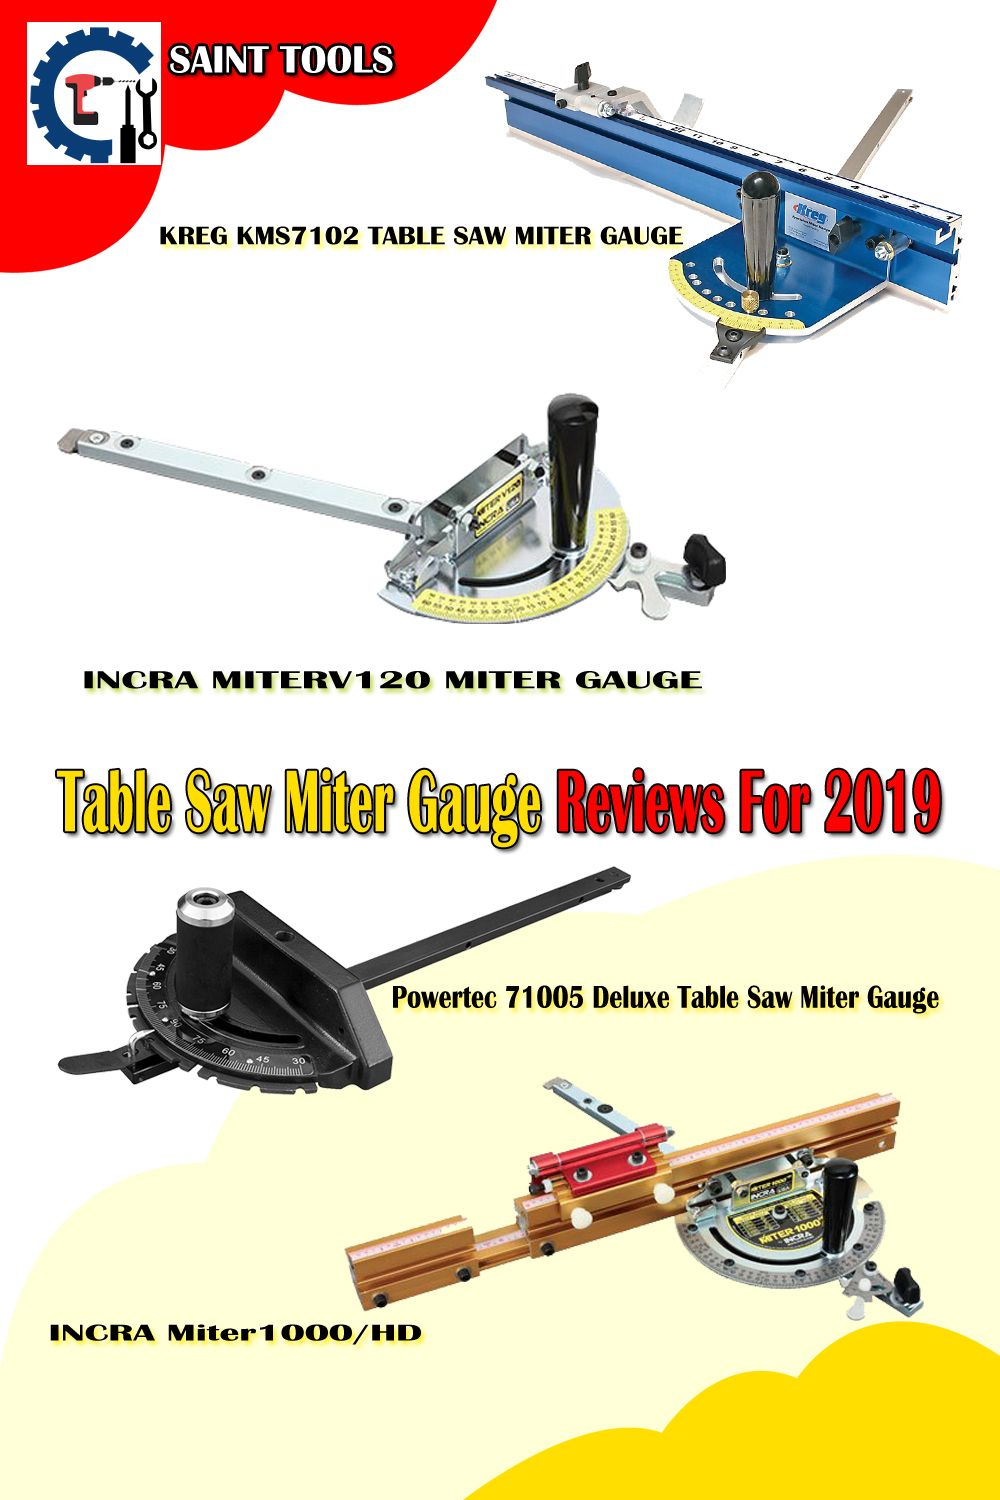 Table Saw Miter Gauge Reviews 2020 | Table saw, Best table saw